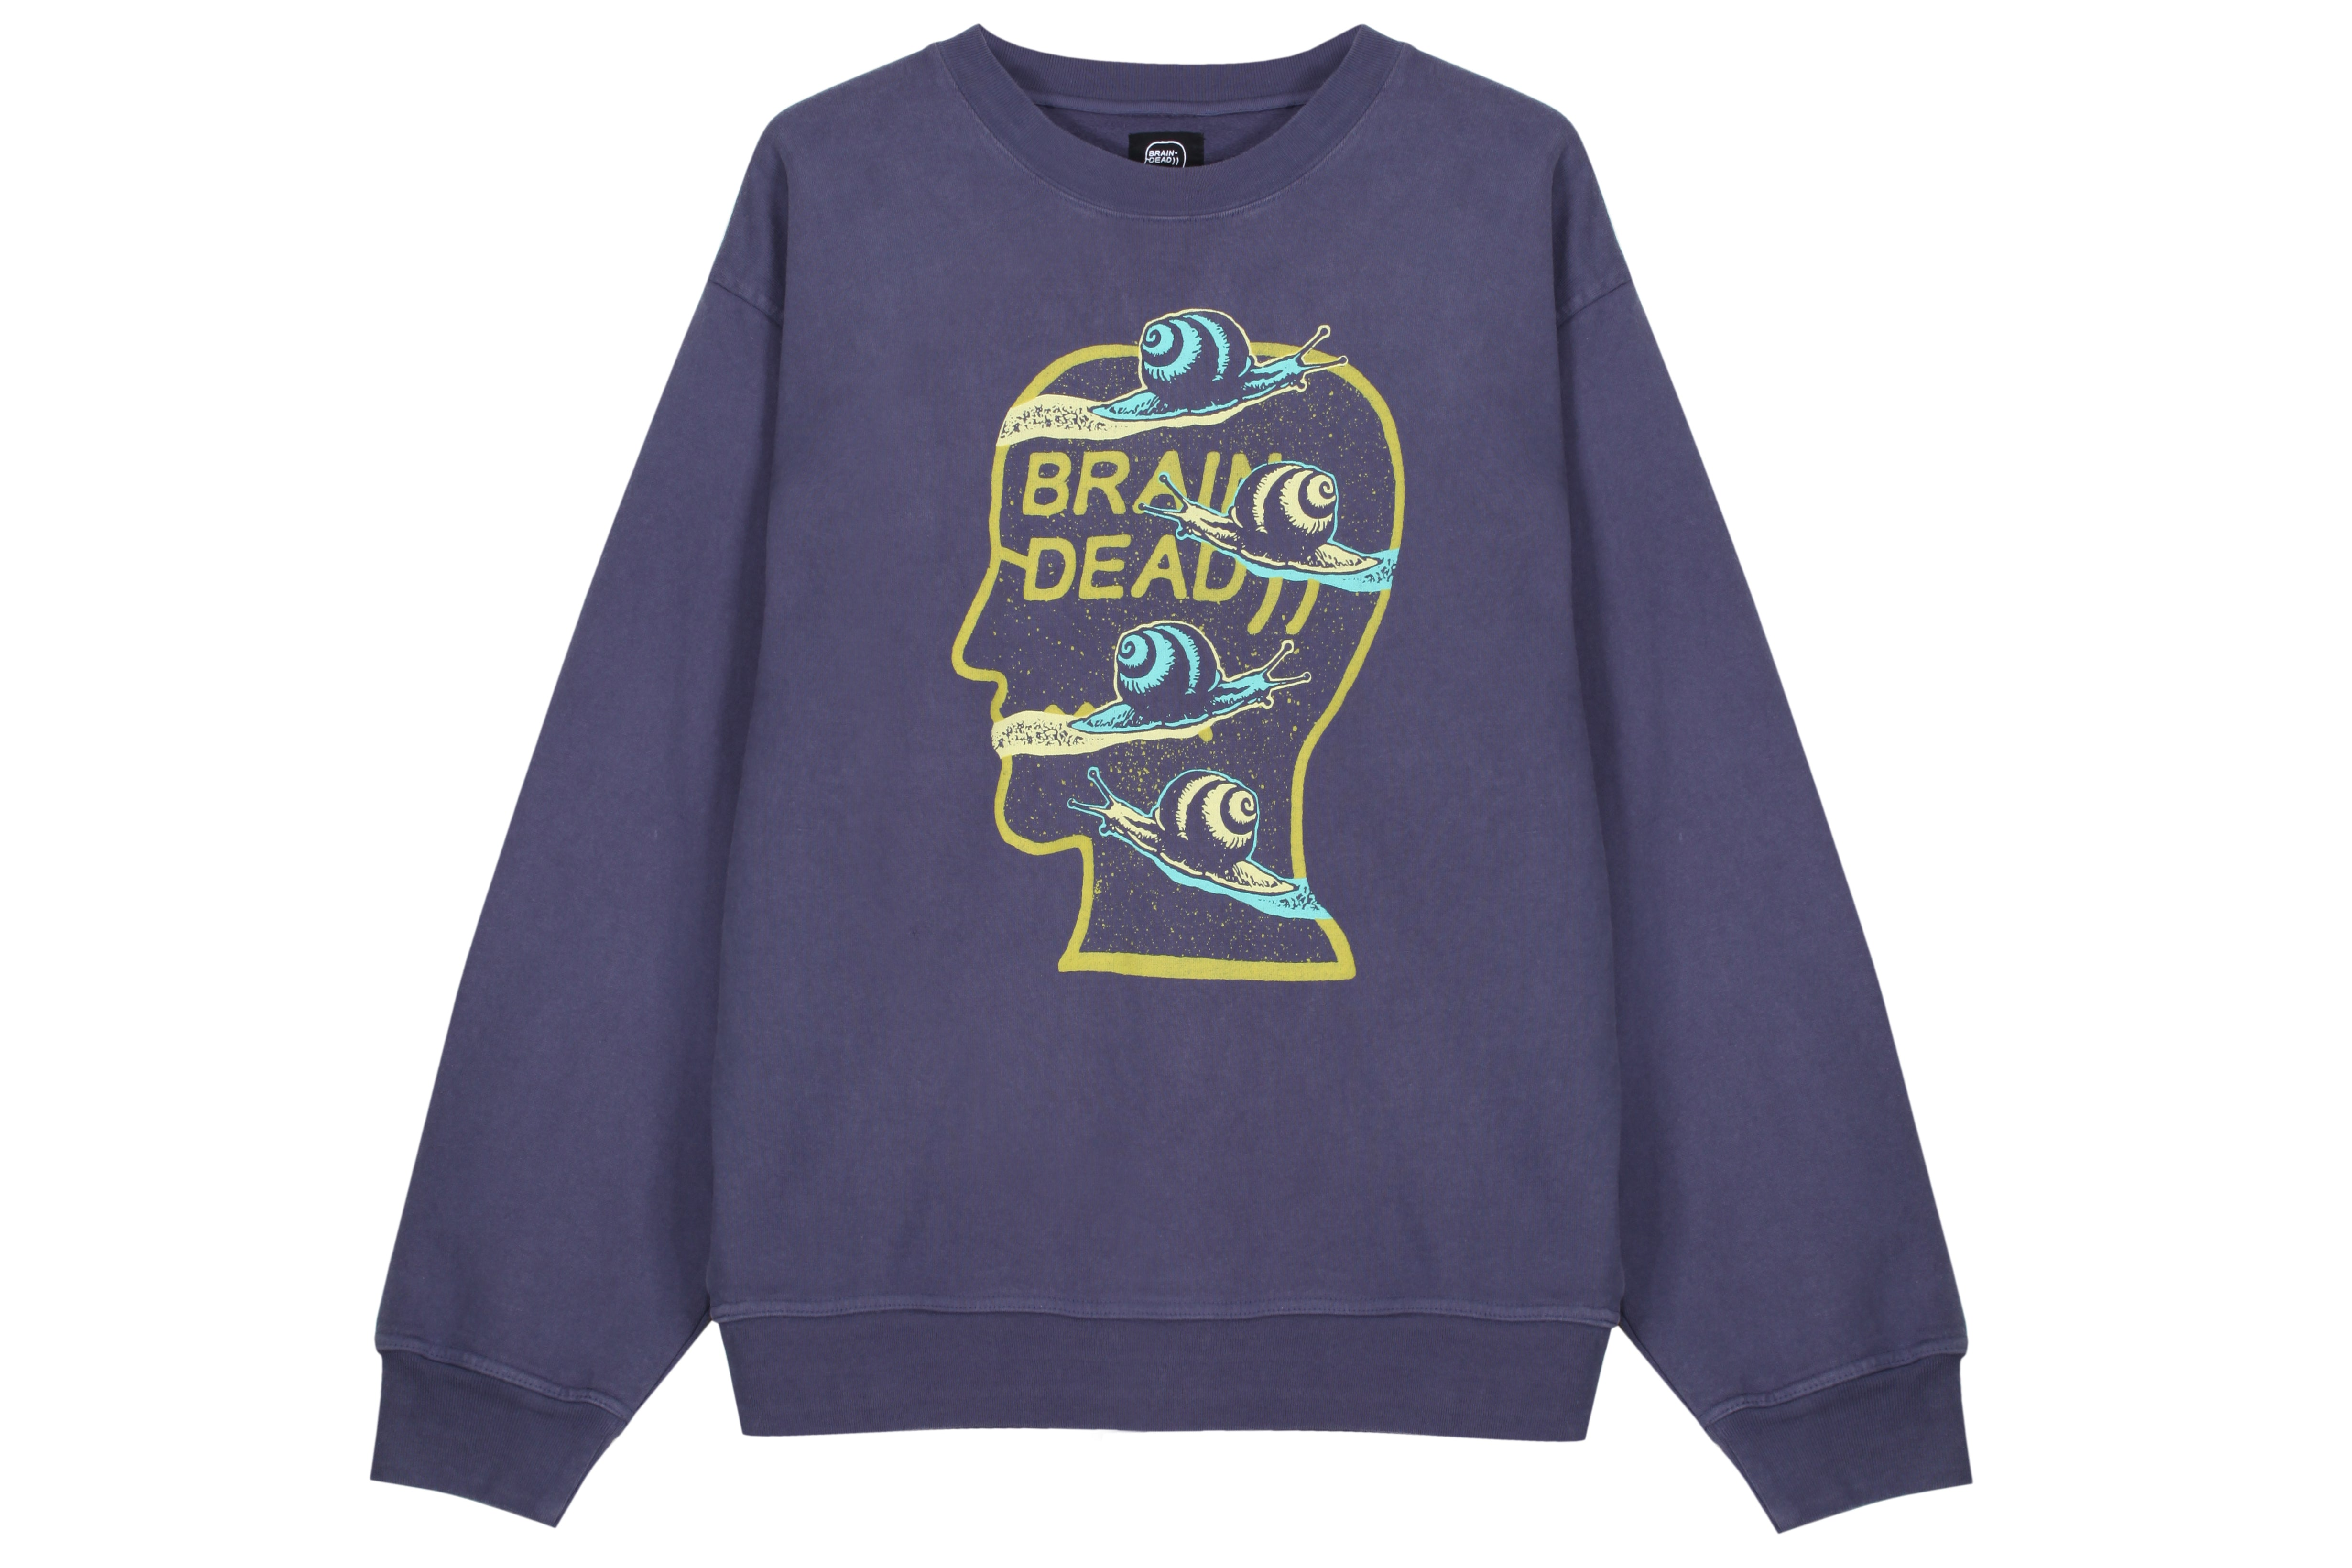 Braindead Snail Trail Crewneck